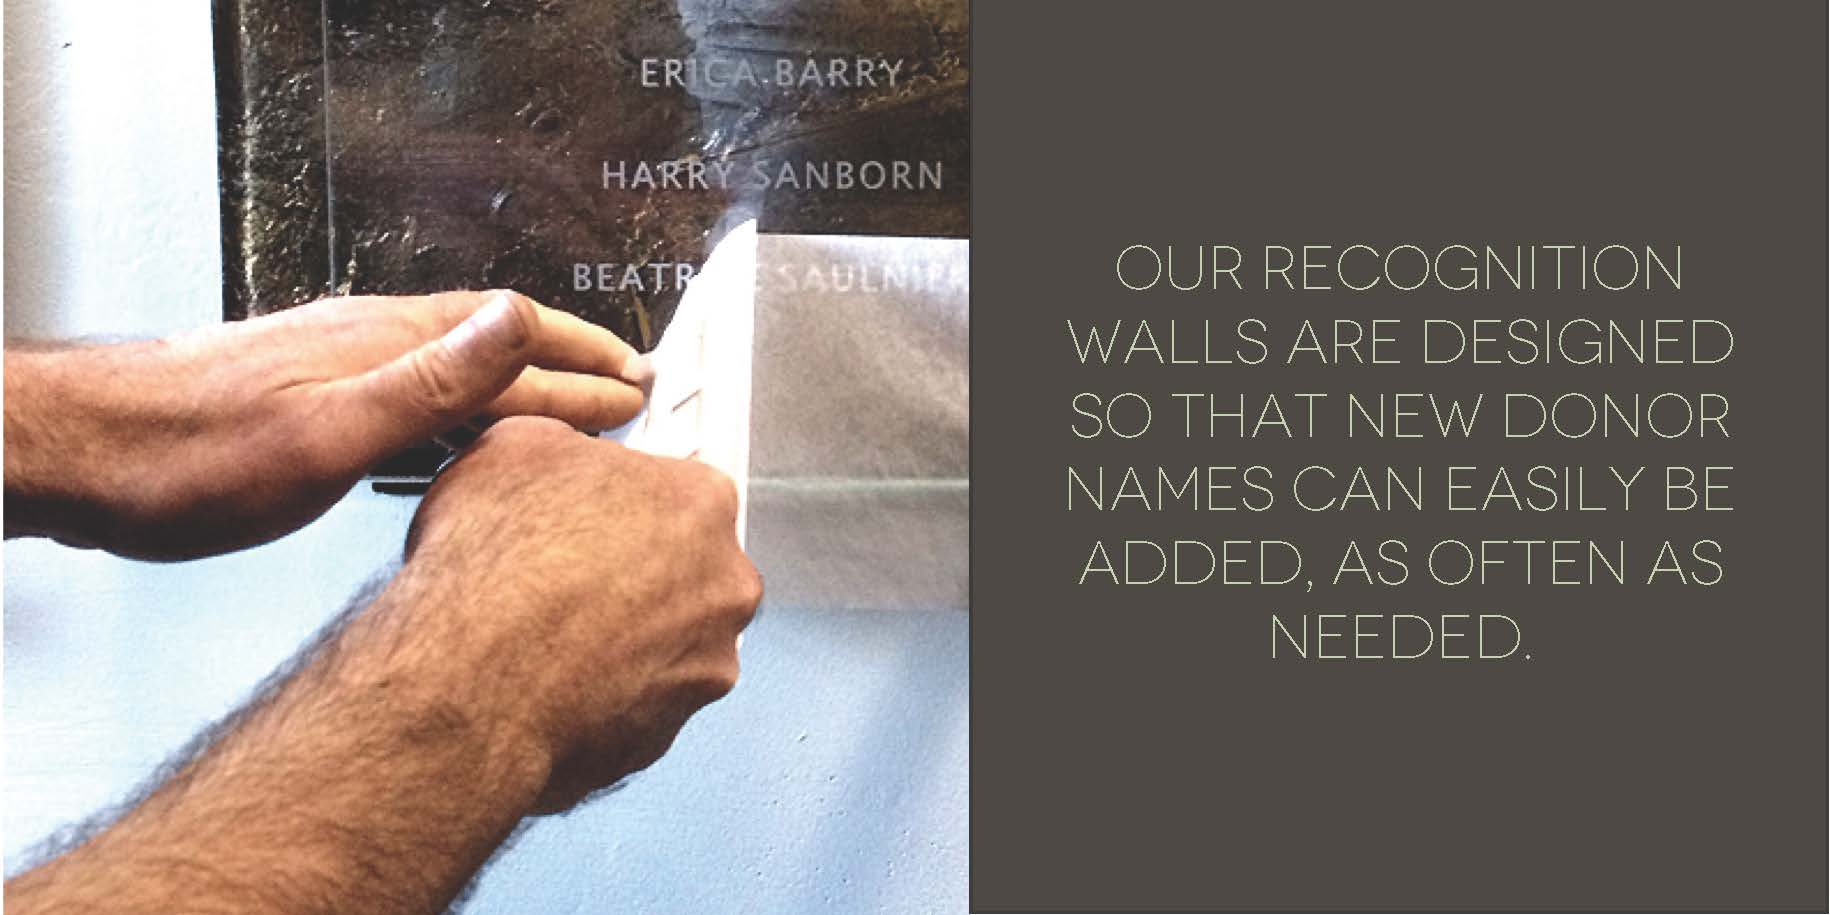 Our donor recognition walls are designed so that names can easily be added, as often as needed.